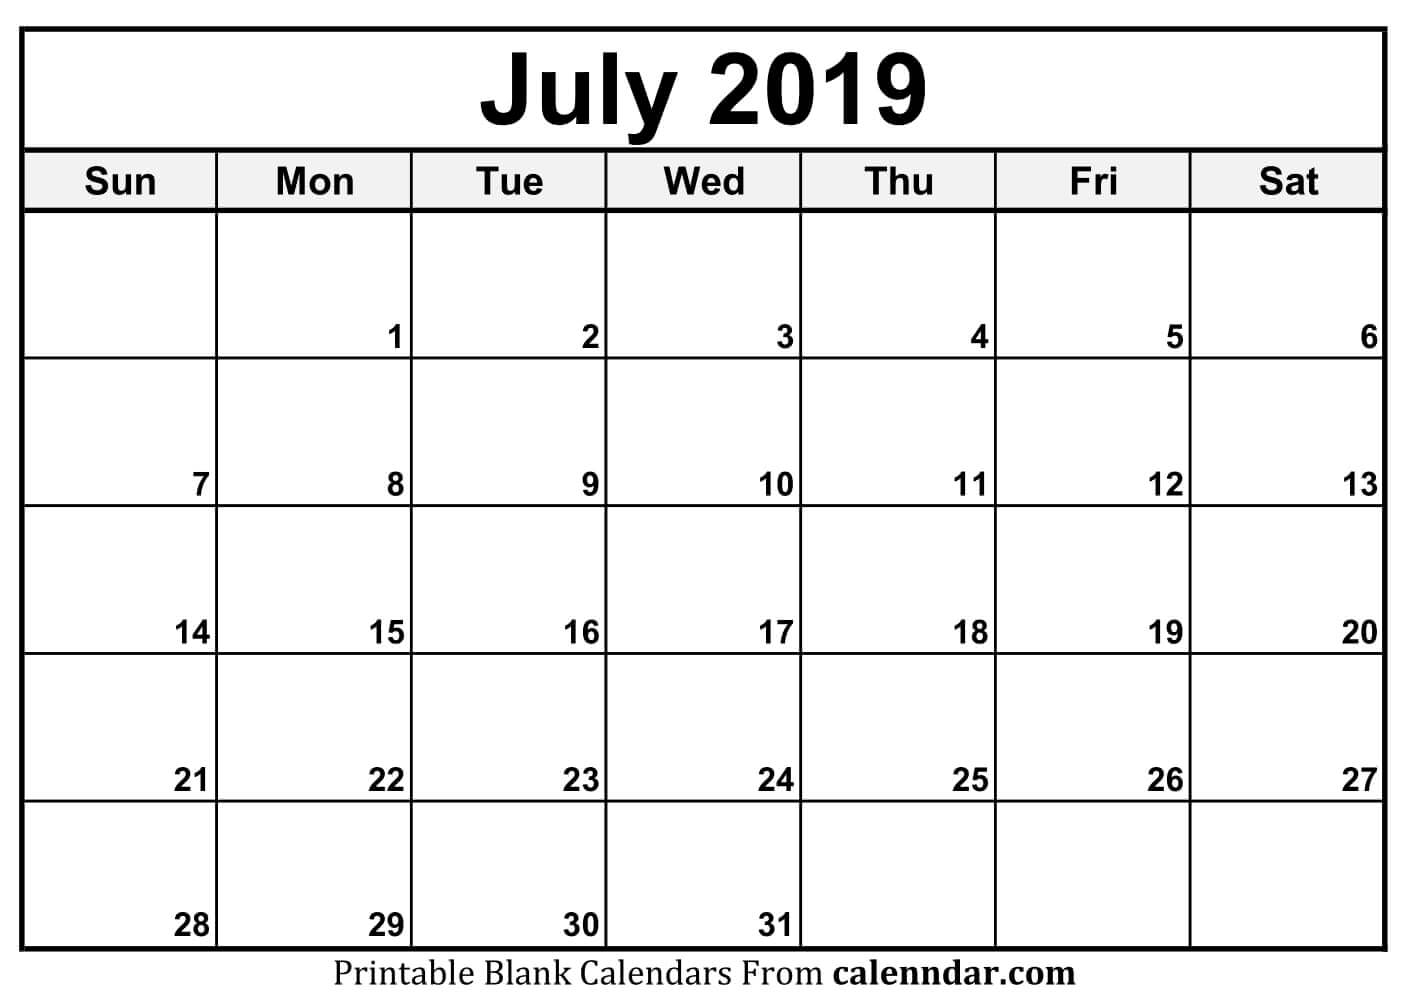 blank july 2019 calendar templates calenndar::July 2019 Calendar